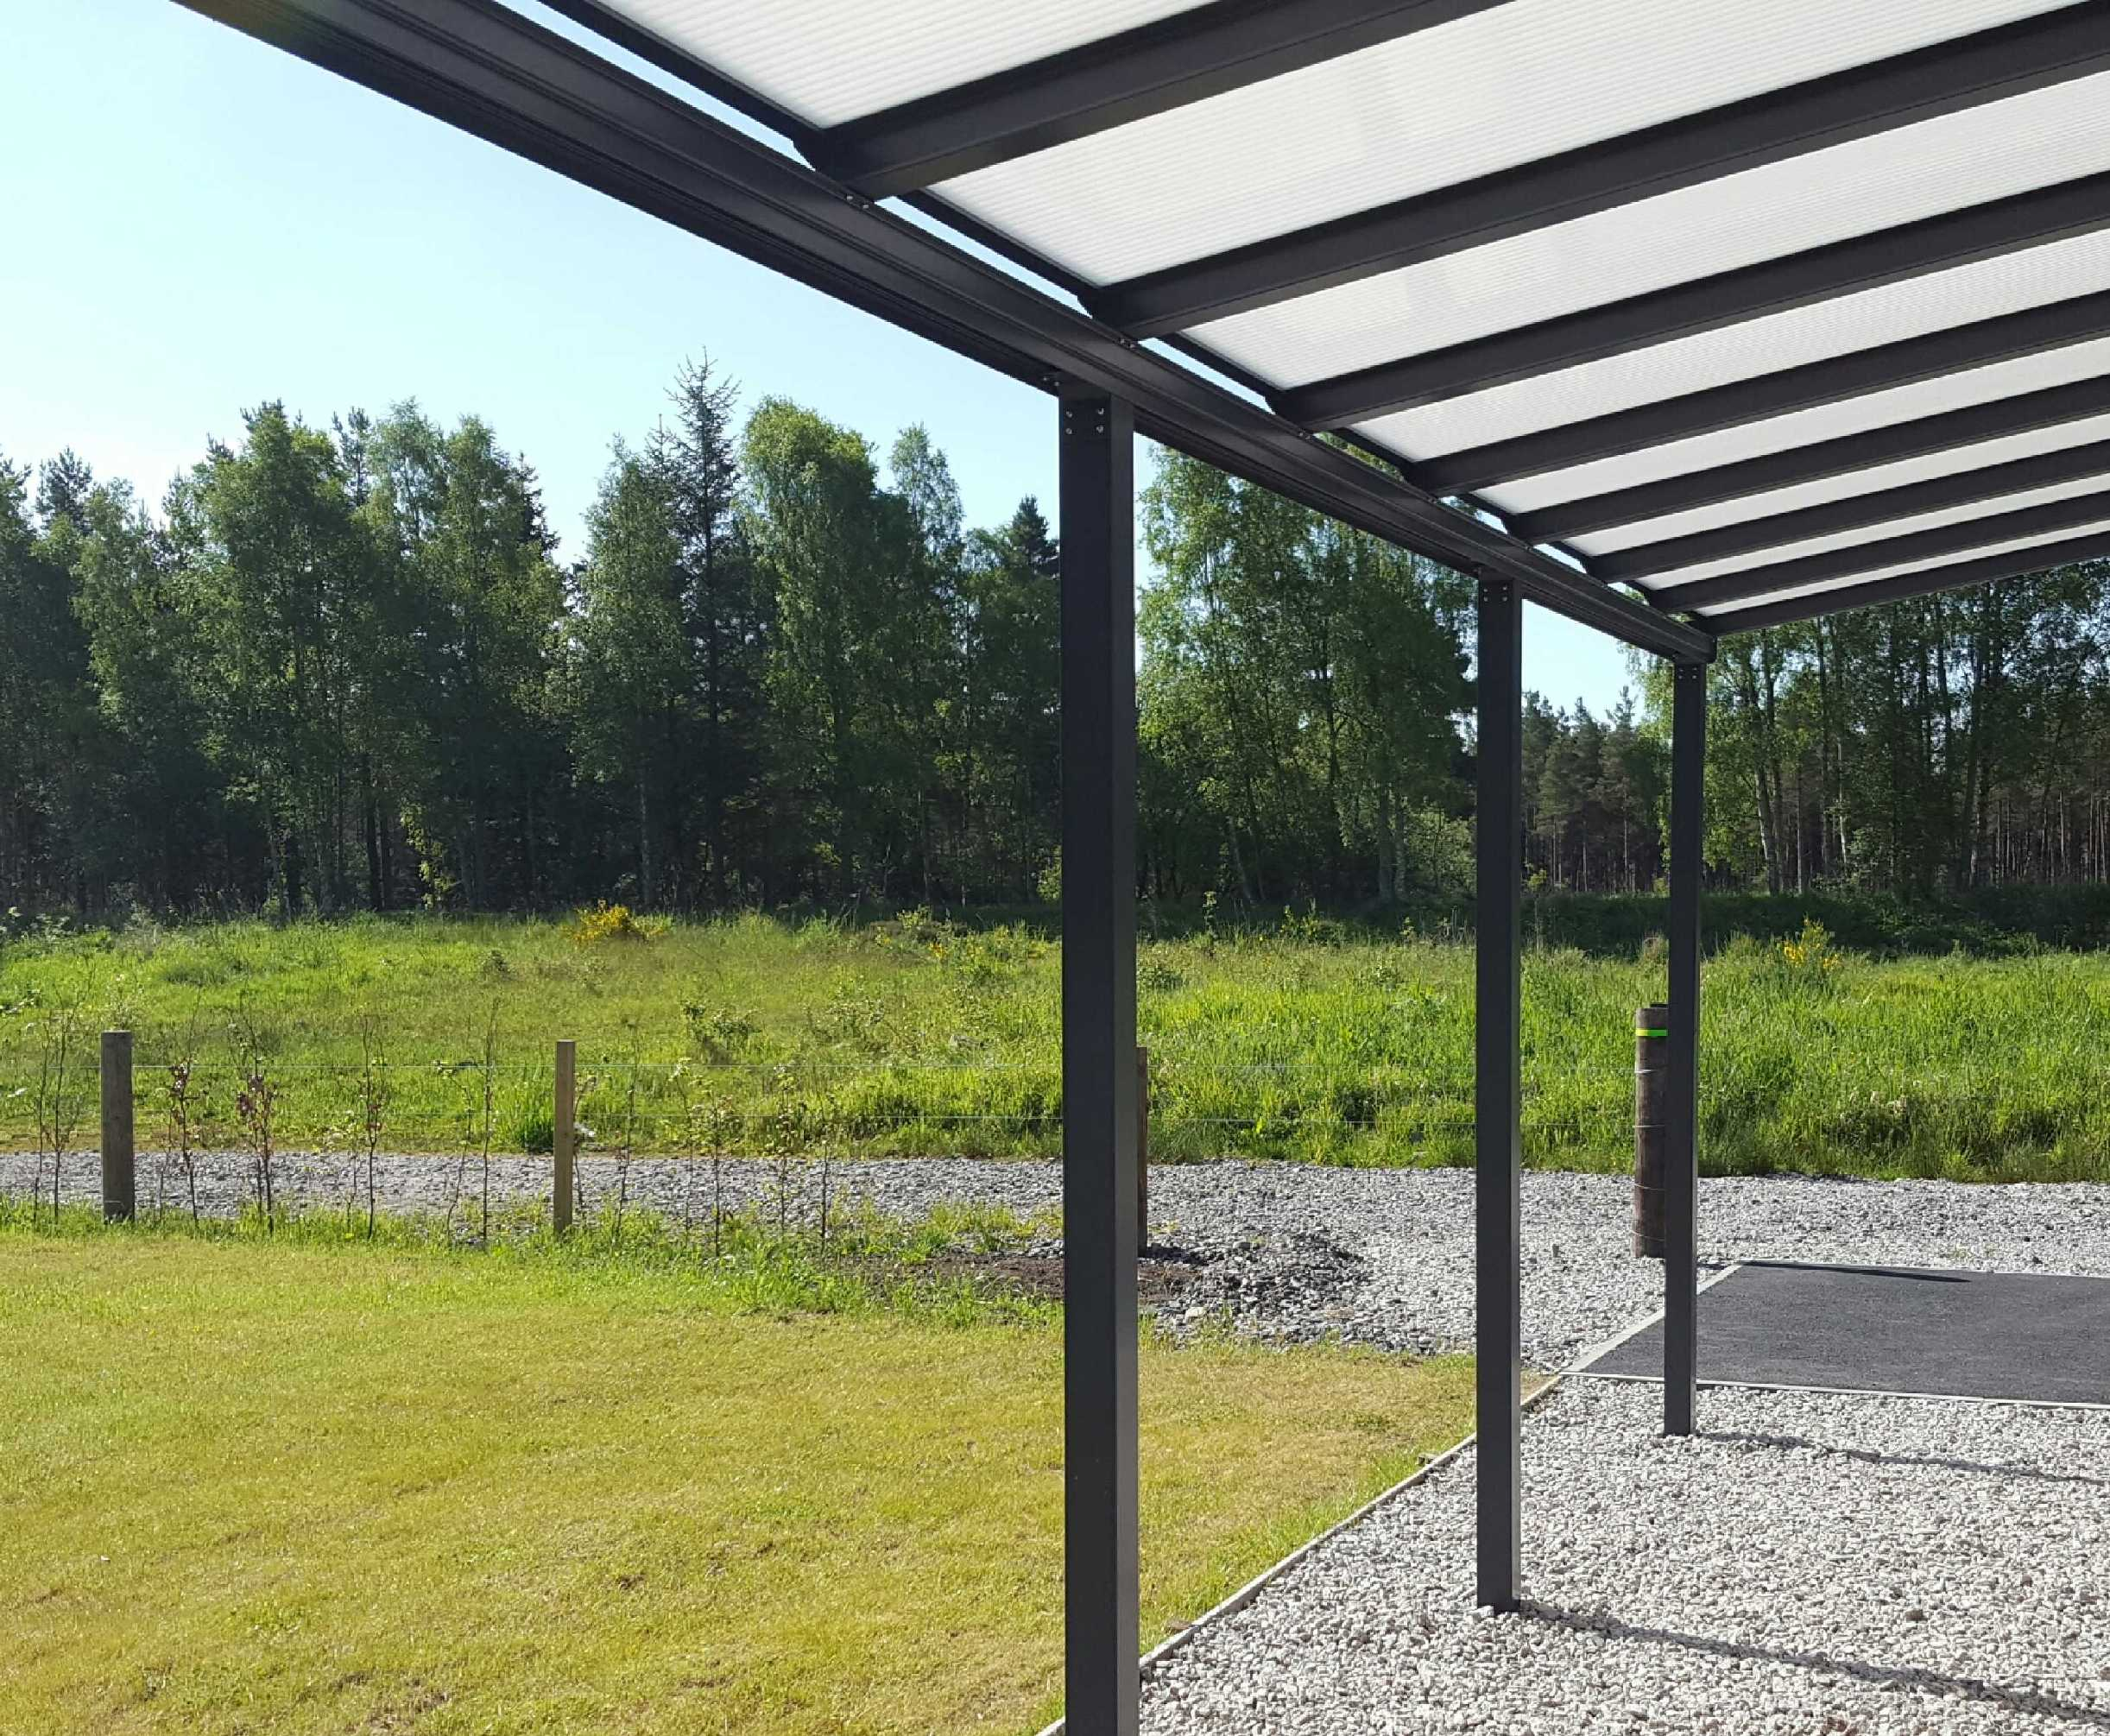 Omega Smart Lean-To Canopy, Anthracite Grey, 16mm Polycarbonate Glazing - 11.6m (W) x 2.0m (P), (5) Supporting Posts